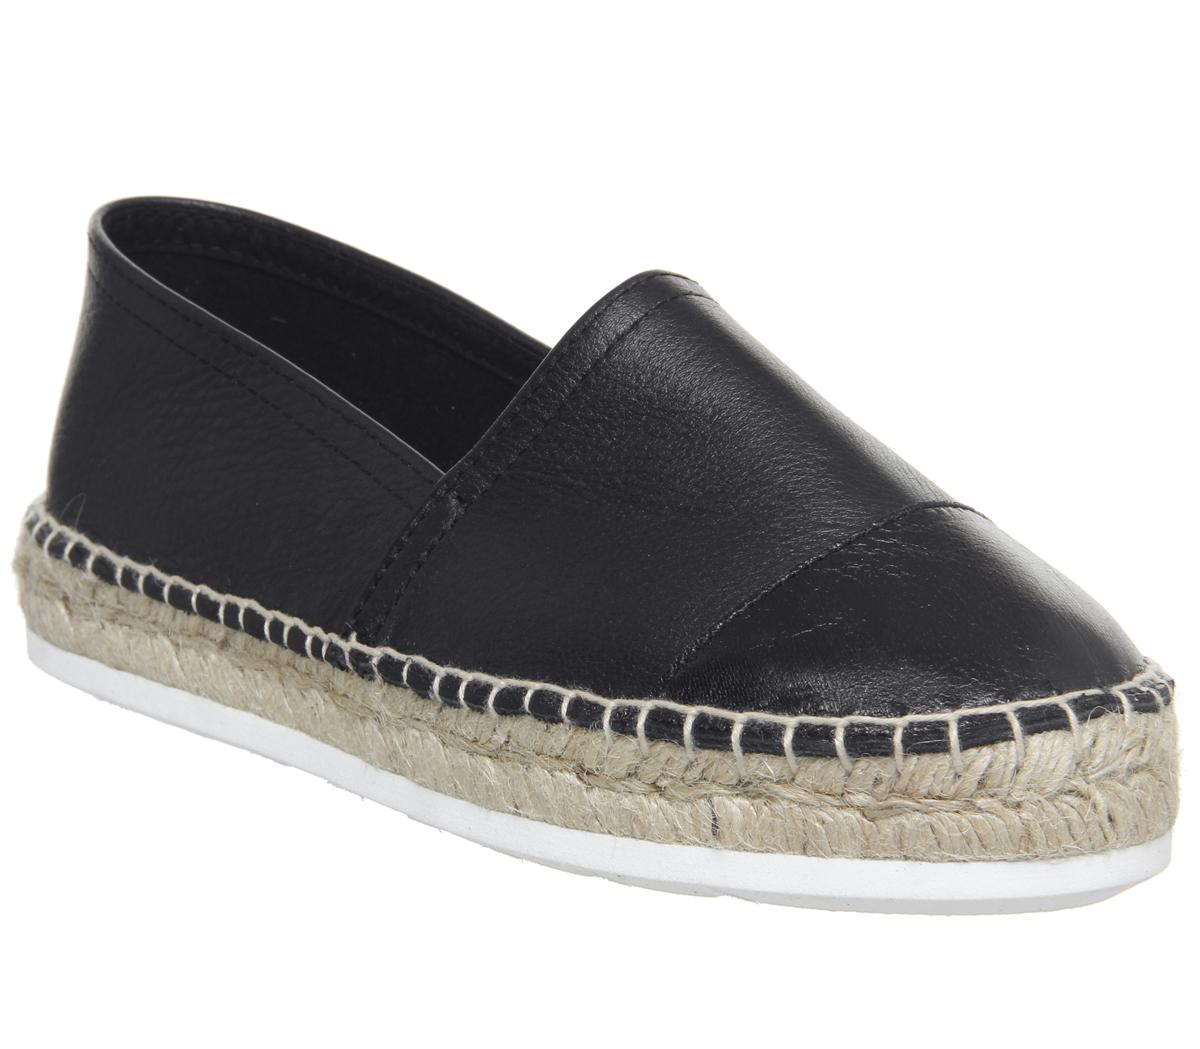 Womens Office Follower Toe Cap Espadrille With Eva Outsole Black Leather